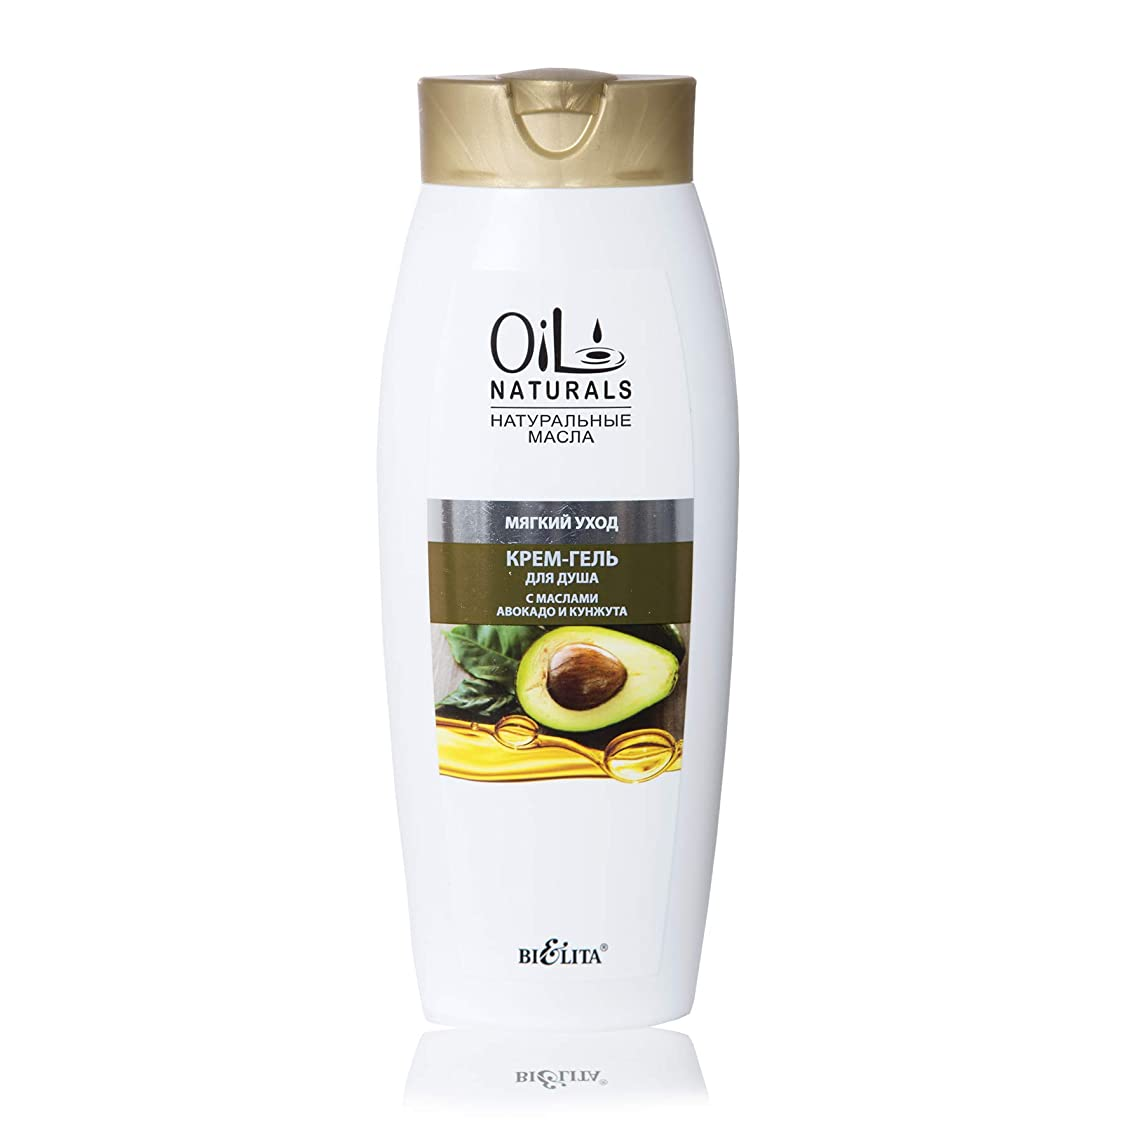 醸造所休日に間違えたBielita & Vitex Oil Naturals Line | Soft Care Creamy Shower Gel, 430 ml | Avocado Oil, Silk Proteins, Sesame Oil, Vitamins